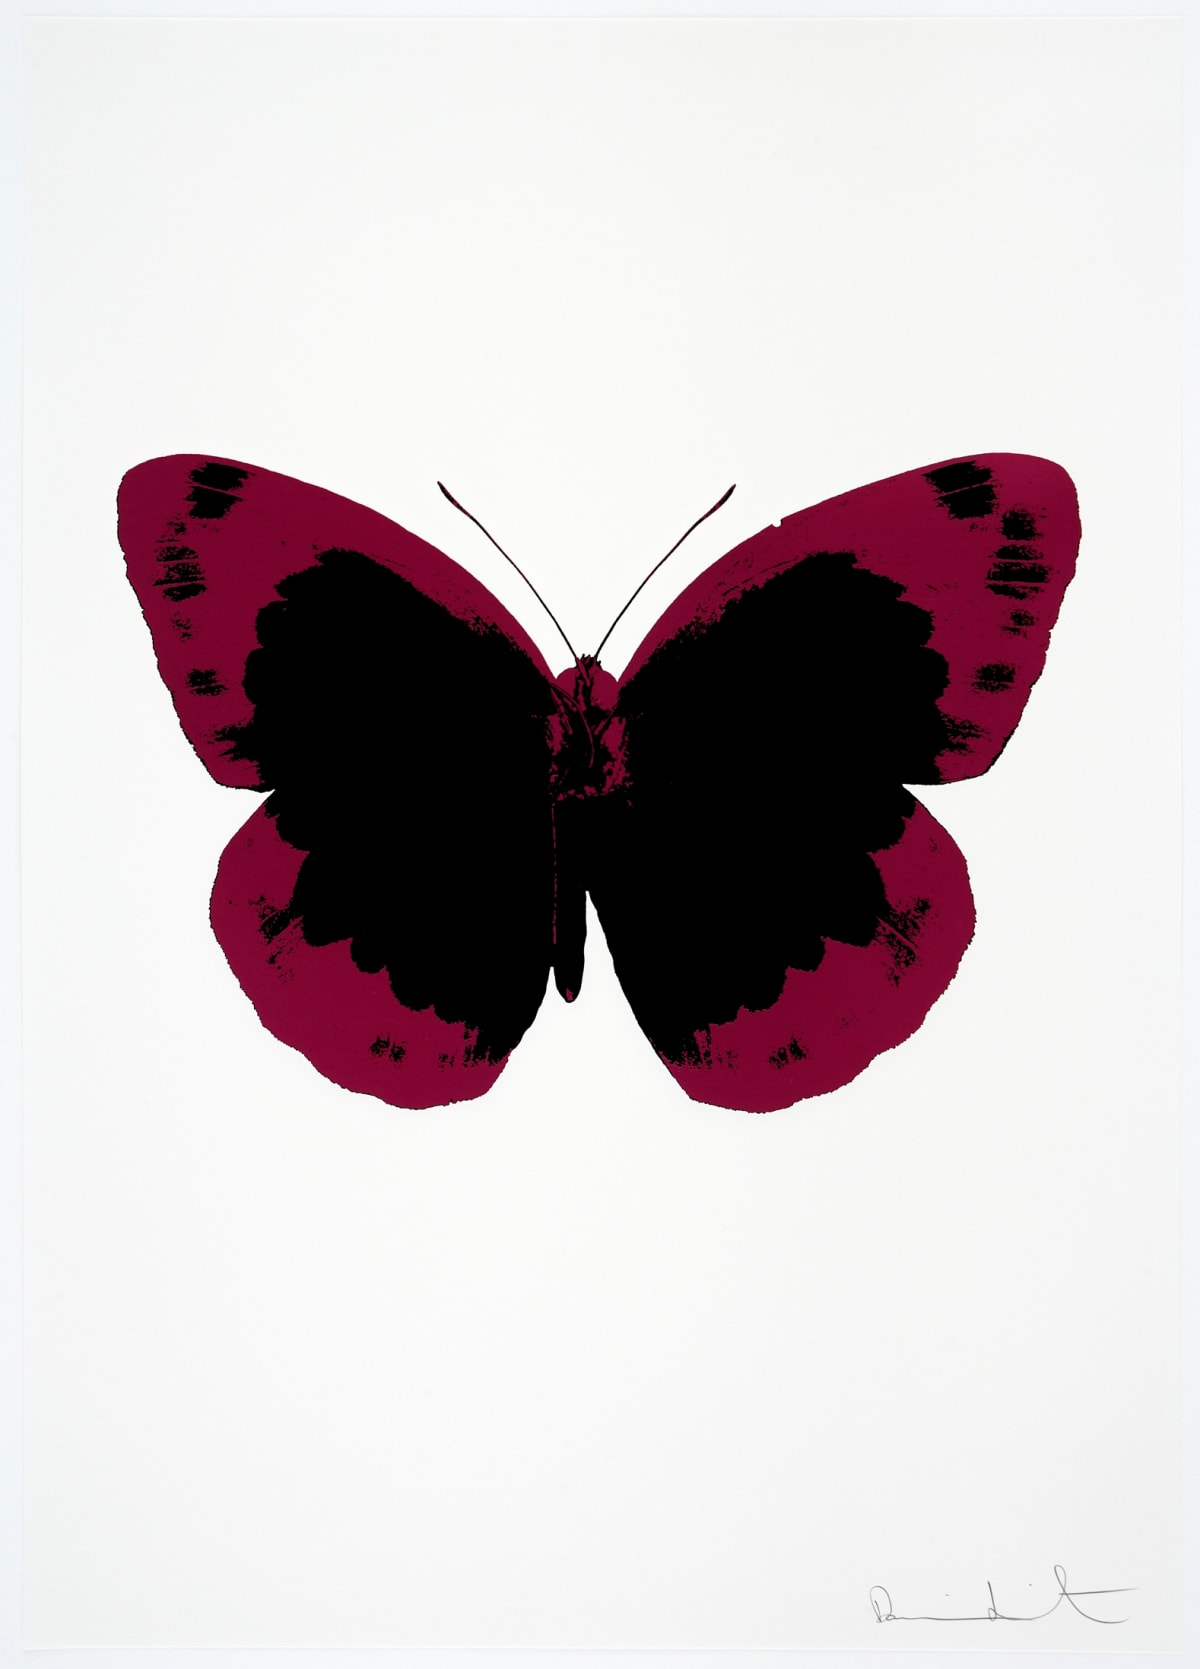 Damien Hirst The Souls II - Raven Black/Fuchsia Pink/Blind Impression, 2010 2 colour foil block on 300gsm Arches 88 archival paper. Signed and numbered. Published by Paul Stolper and Other Criteria 72 x 51cm OC7885 / 658-68 Edition of 15